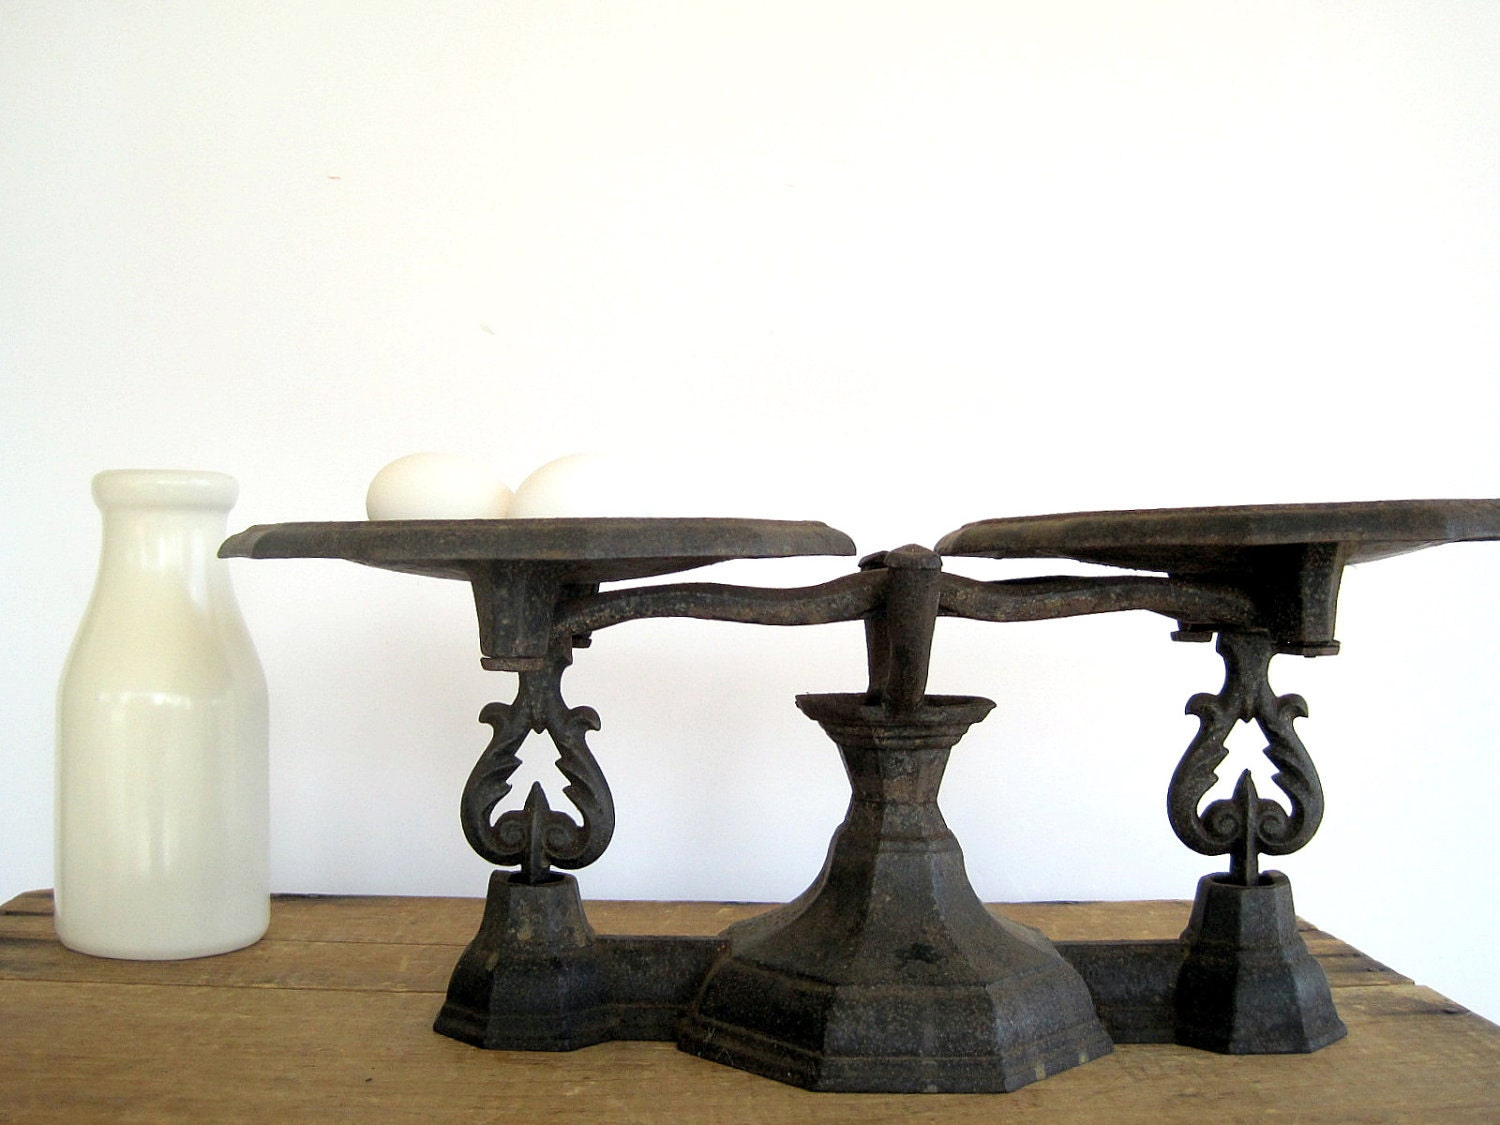 SALE Antique Cast Iron Balance Scales by BirdinHandVTG on Etsy